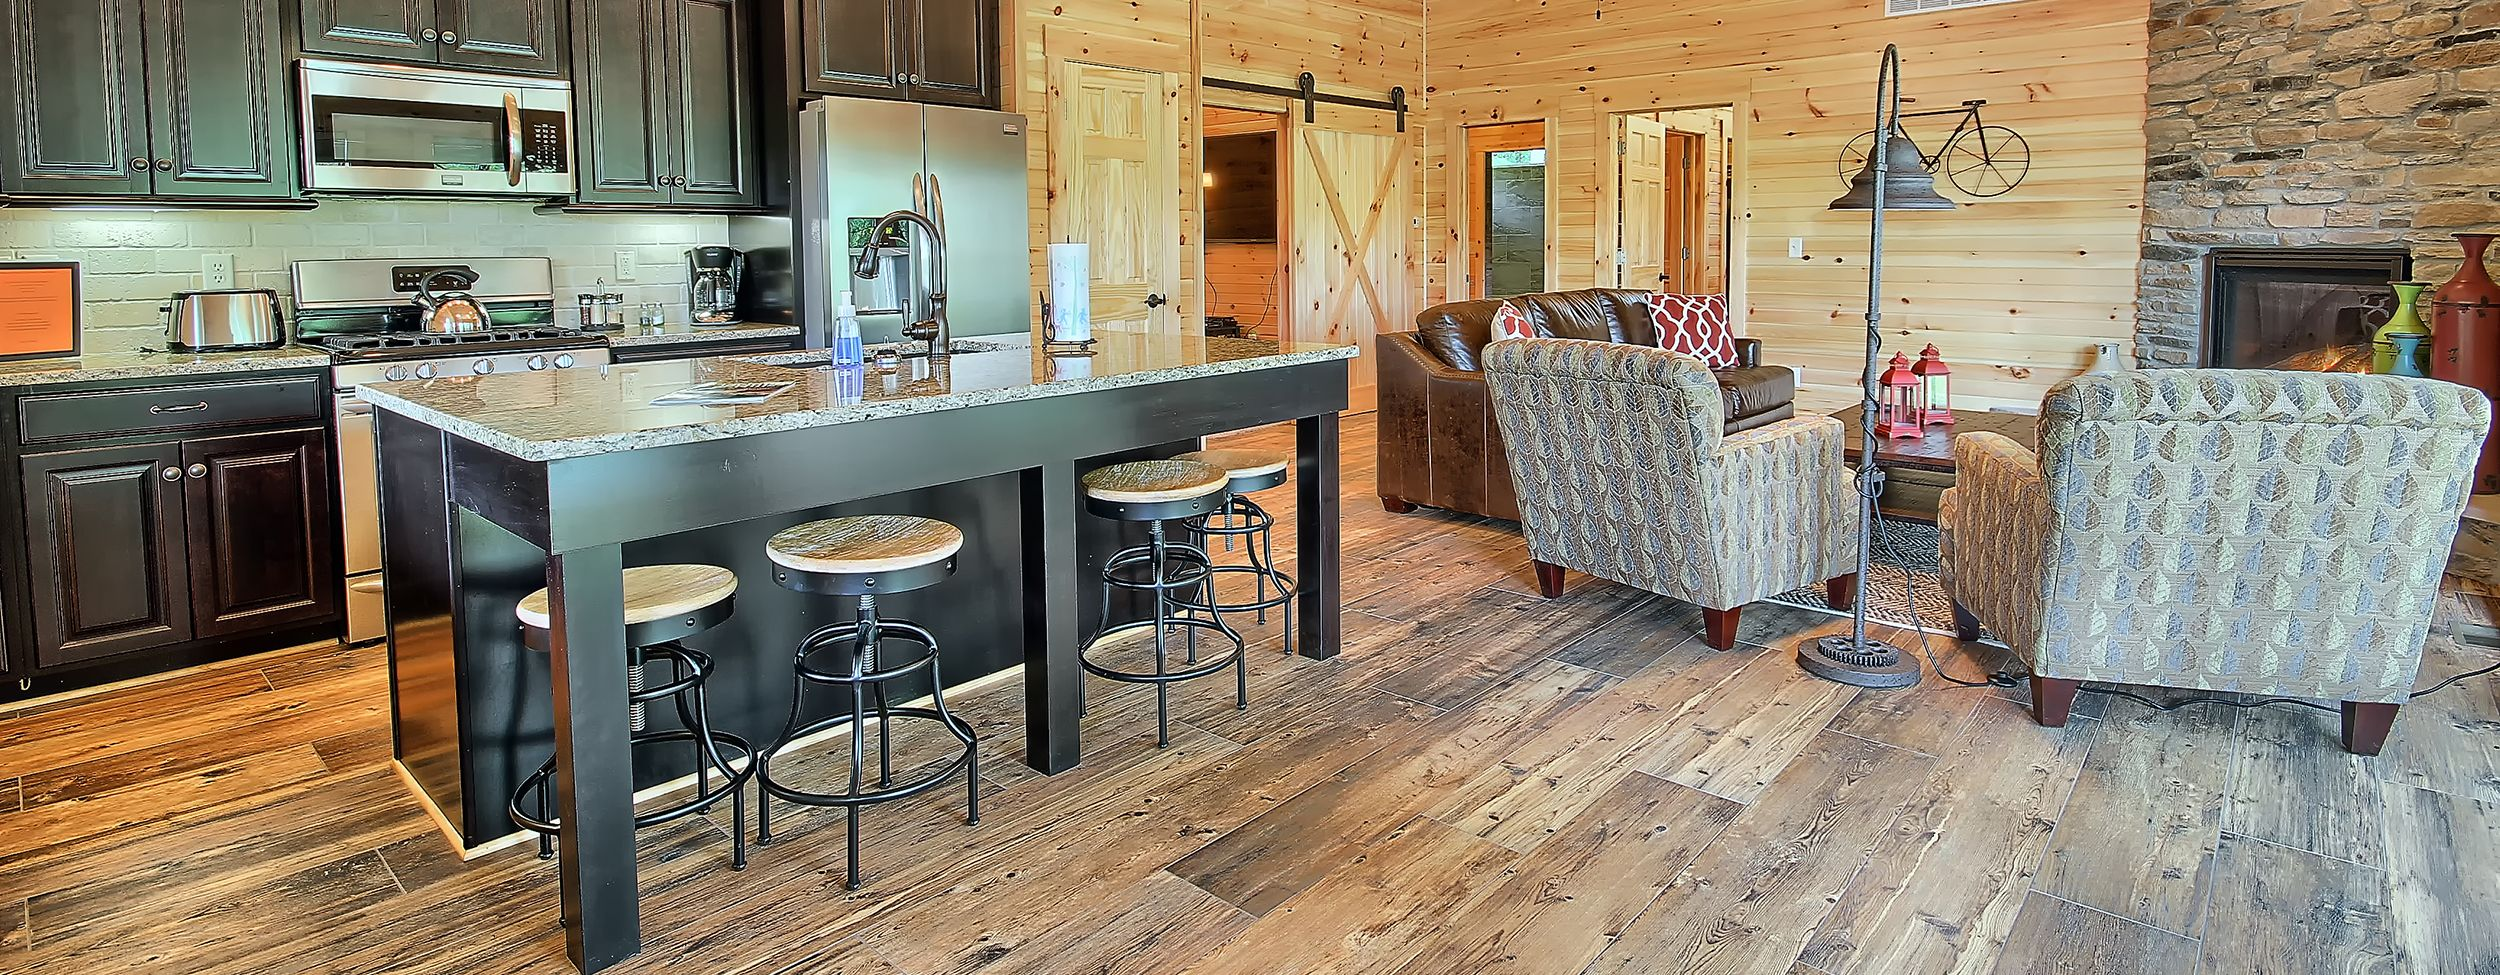 cottages members ohio to hocking hills cabins aspen on photo click logan an enlarge ridge in and gallery image